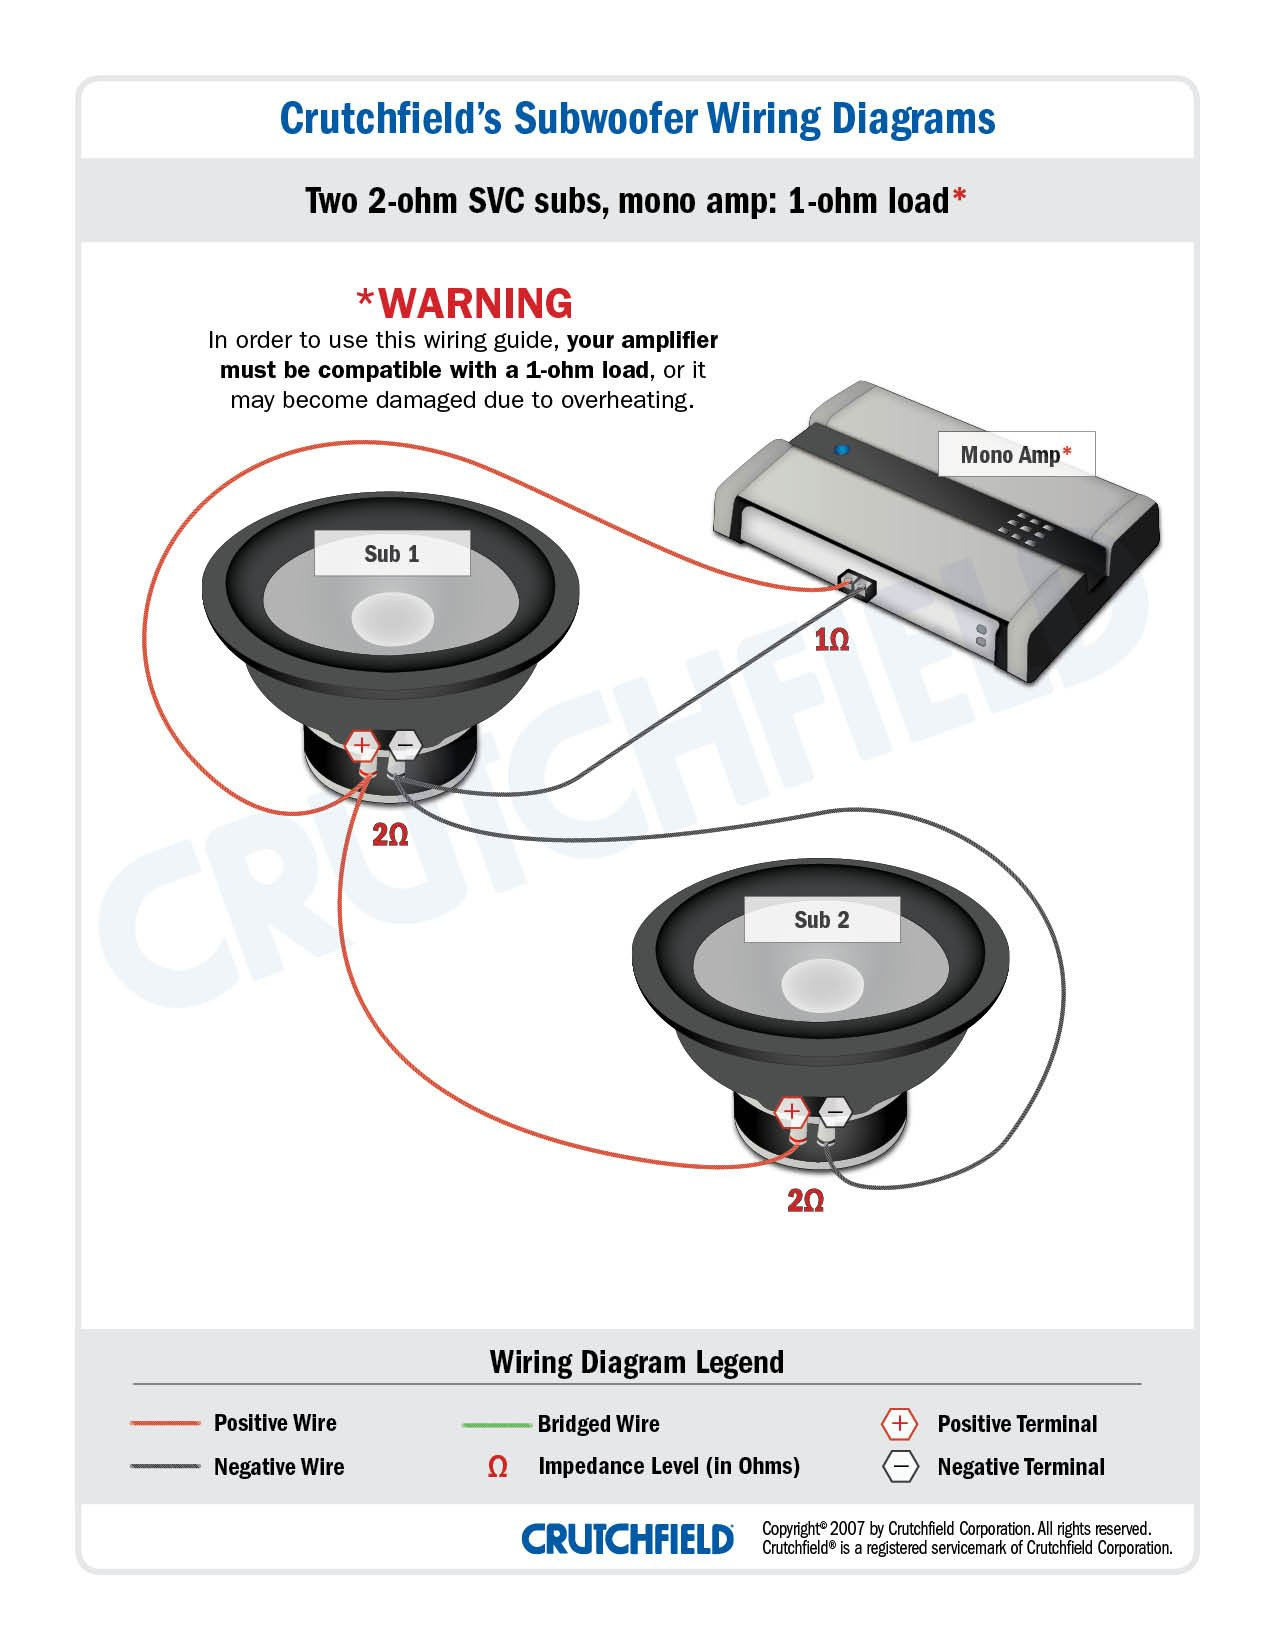 Jbl 4 Ohm Wiring - query Jbl Subwoofer Wiring Diagram on